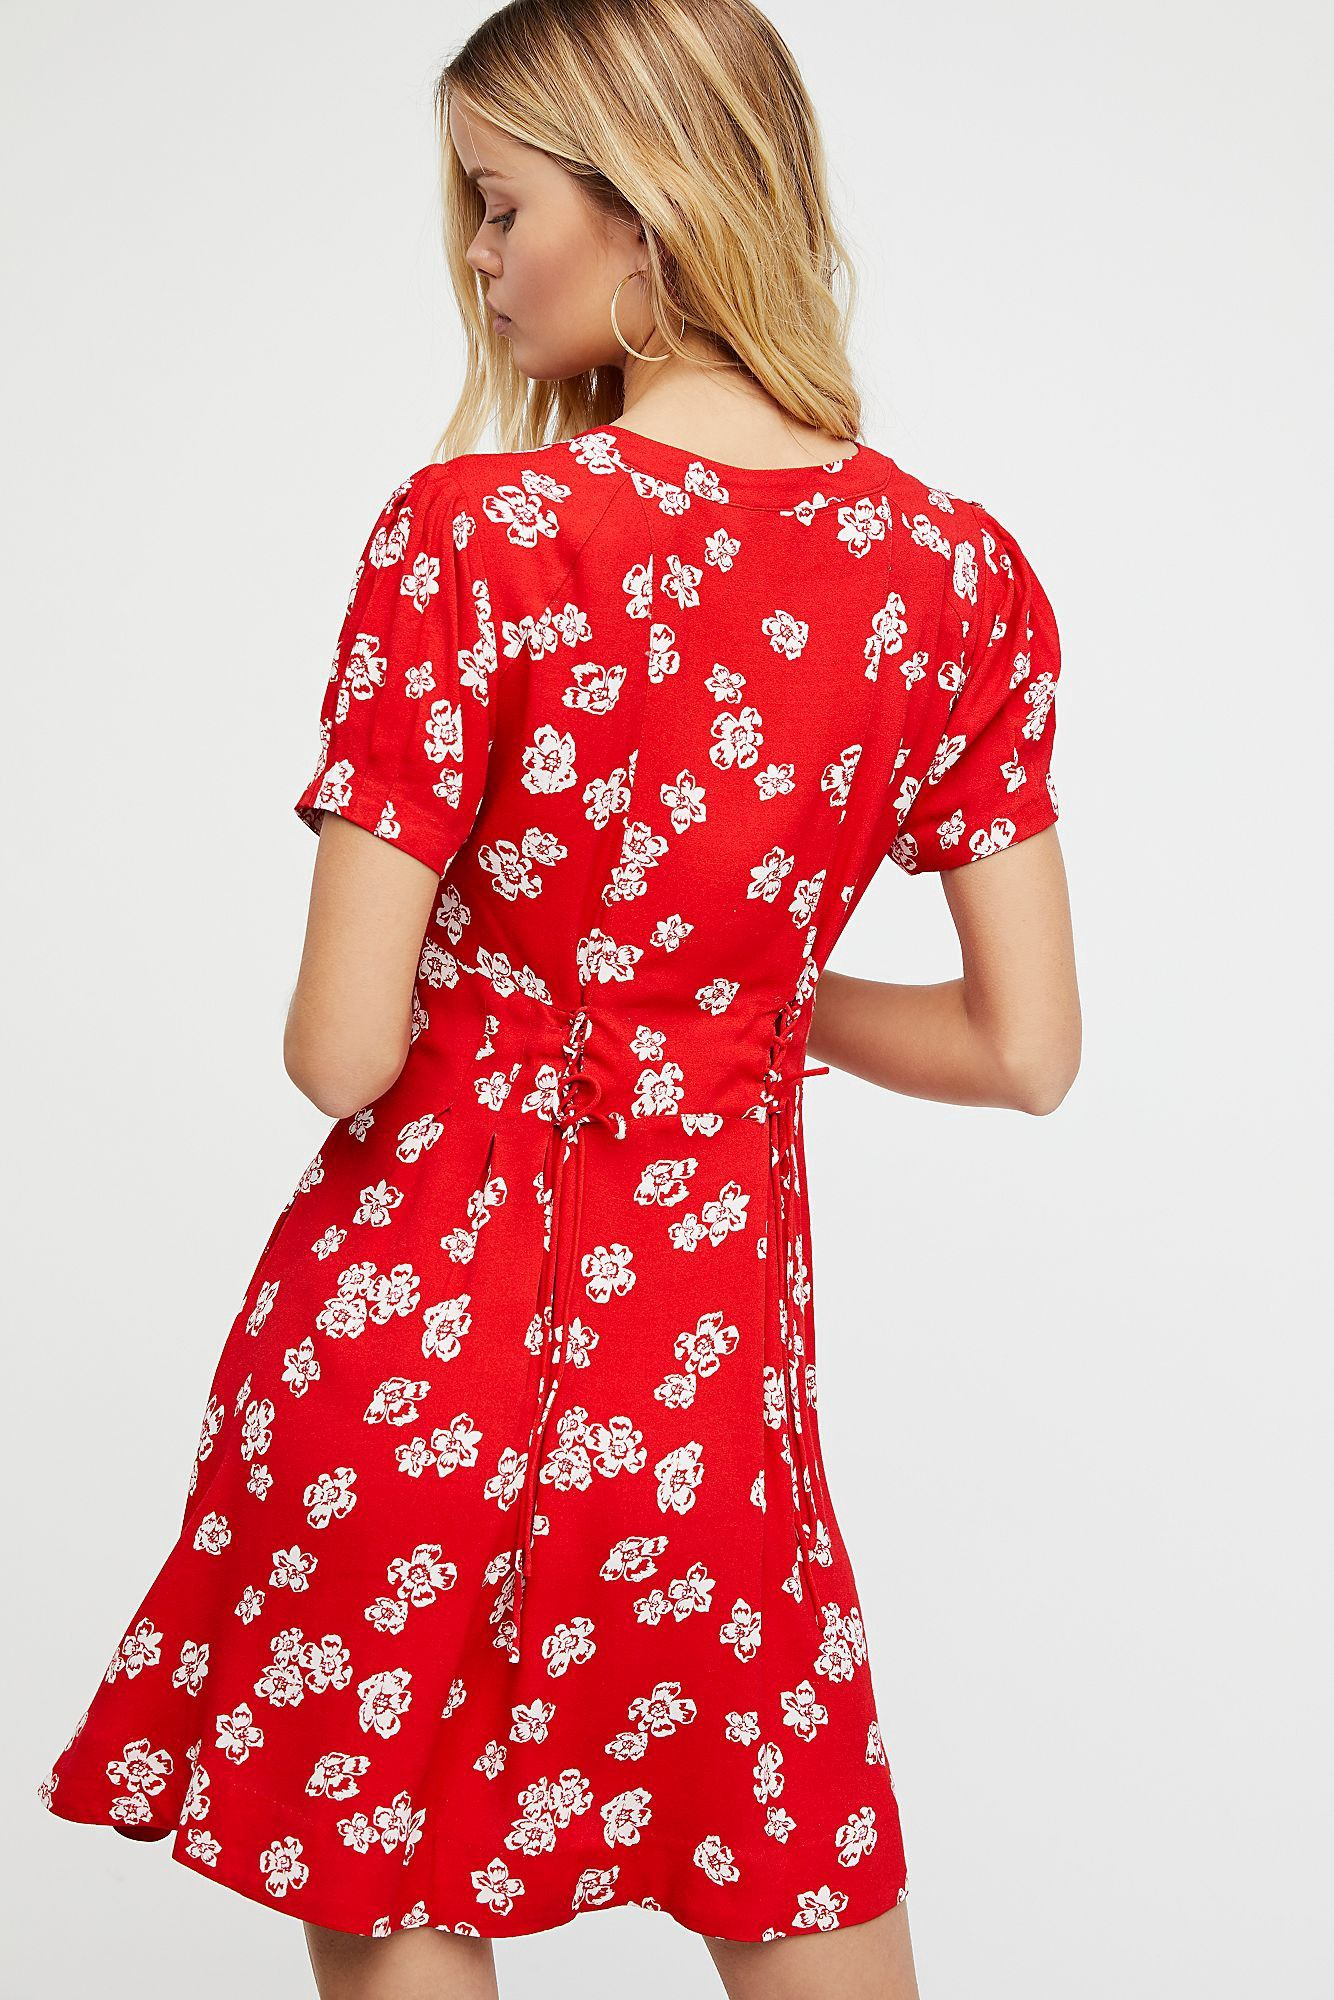 c429773d8662 Free People Dream Girl Mini Dress - Rockin Red Combo 14 | Products ...